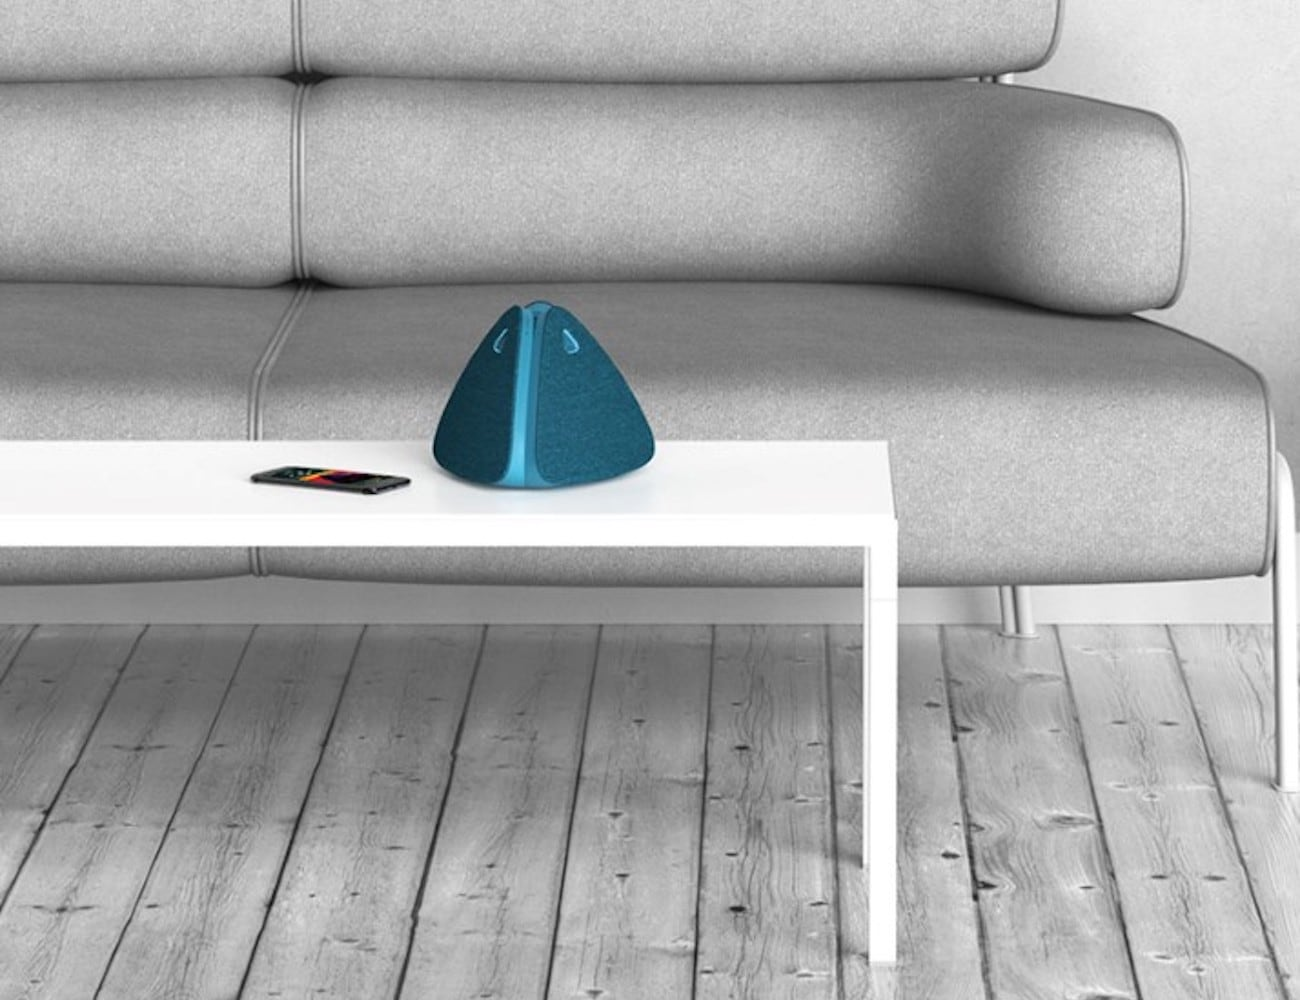 Museg Slim Triangular Speaker offers modular surround sound